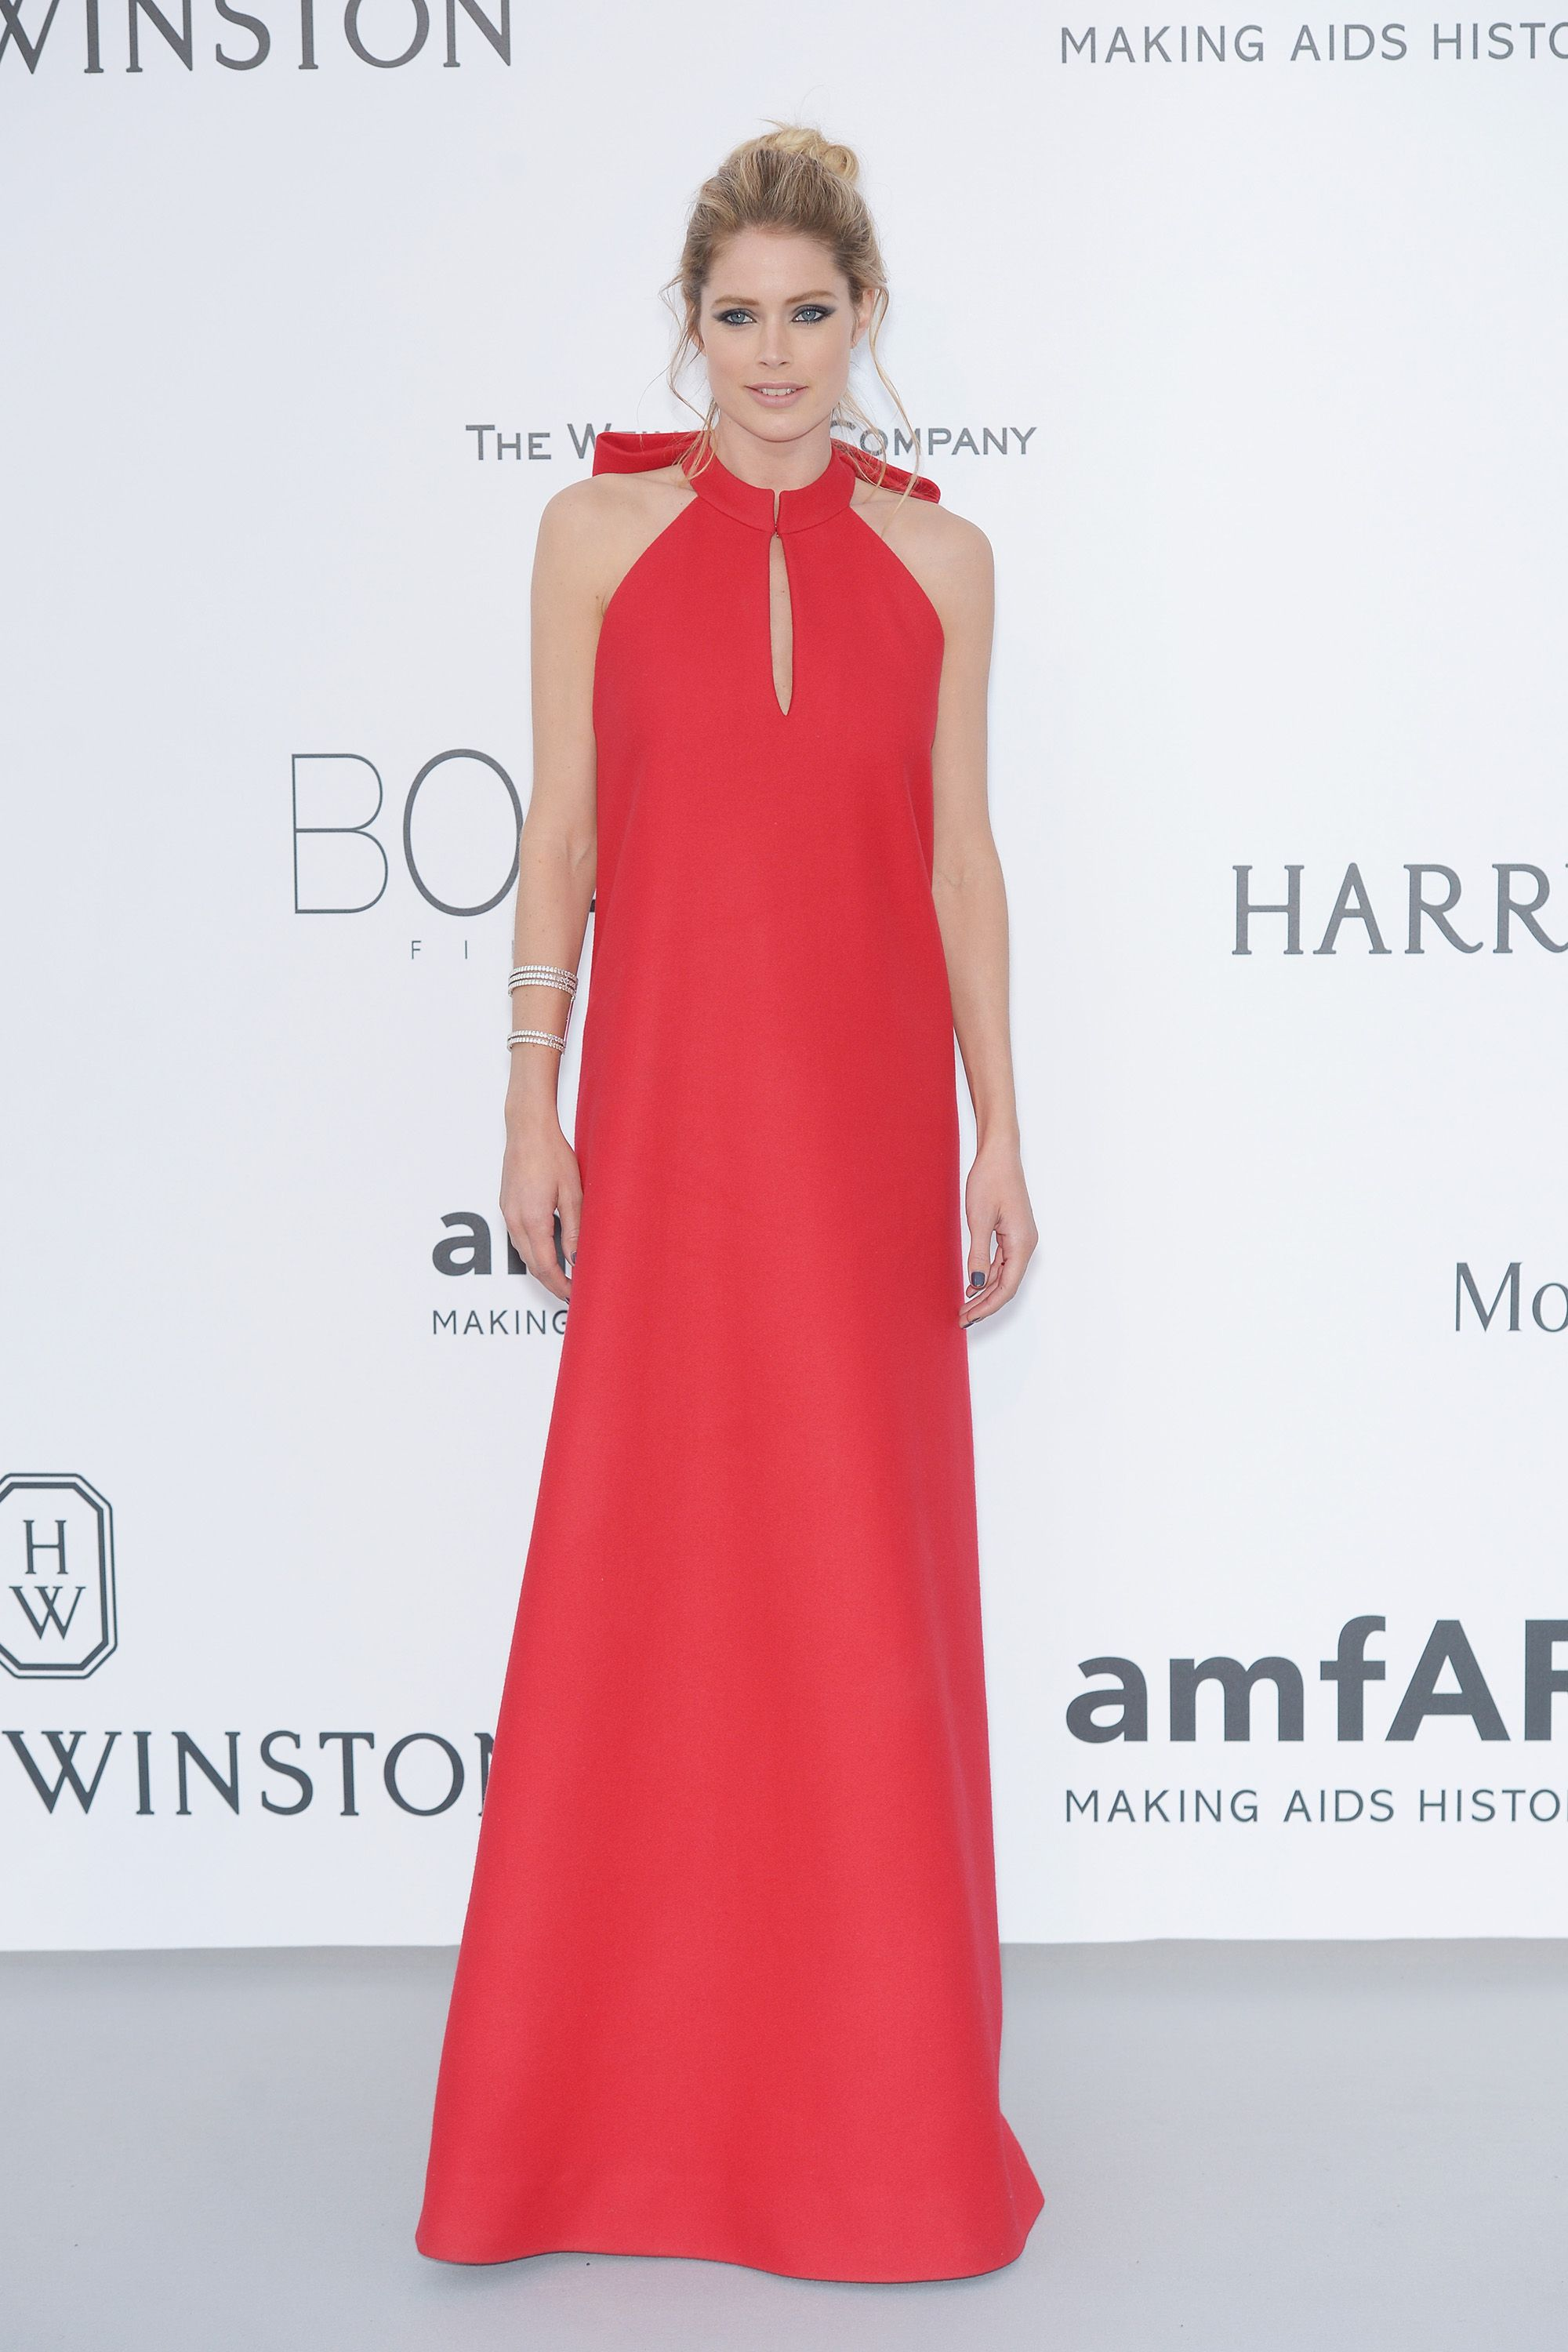 CAP D'ANTIBES, FRANCE - MAY 21:  Model Doutzen Kroes attends amfAR's 22nd Cinema Against AIDS Gala, Presented By Bold Films And Harry Winston at Hotel du Cap-Eden-Roc on May 21, 2015 in Cap d'Antibes, France.  (Photo by Dominique Charriau/WireImage)